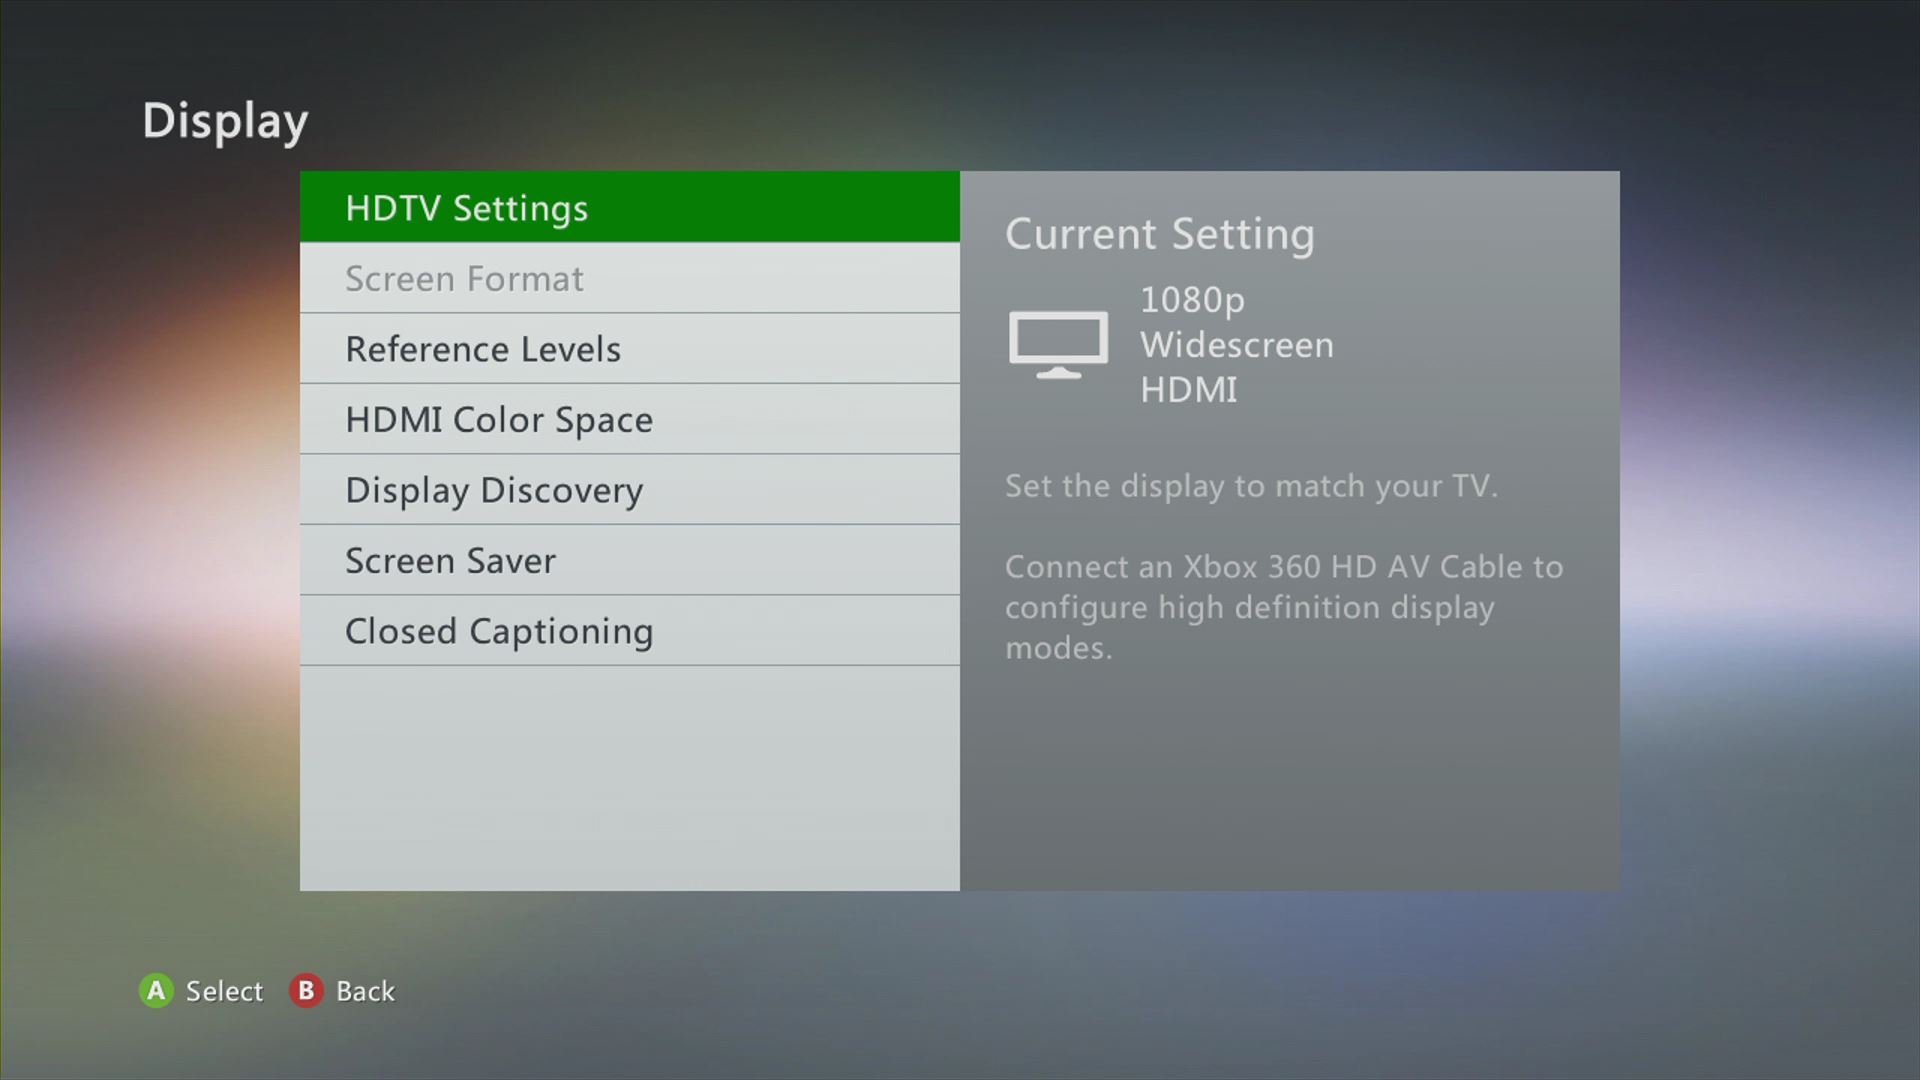 HDTV Settings